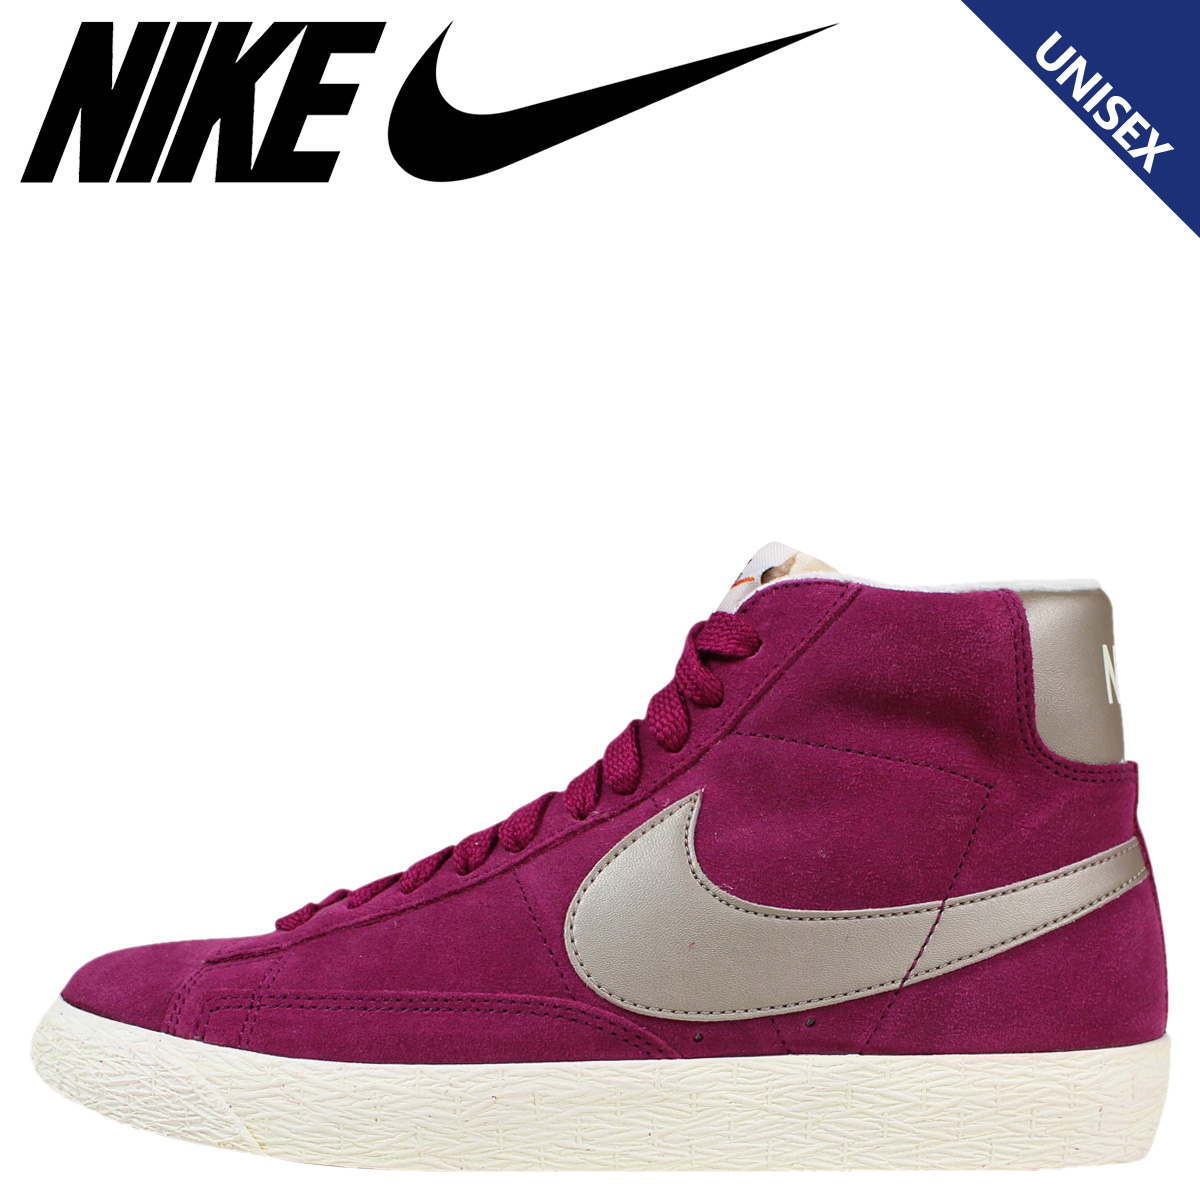 brand new 4385c 90169 ... nike blazer mid from office. d1b55 84c0c  new zealand the origin of the  name comes from the greece myths of one jeff johnson